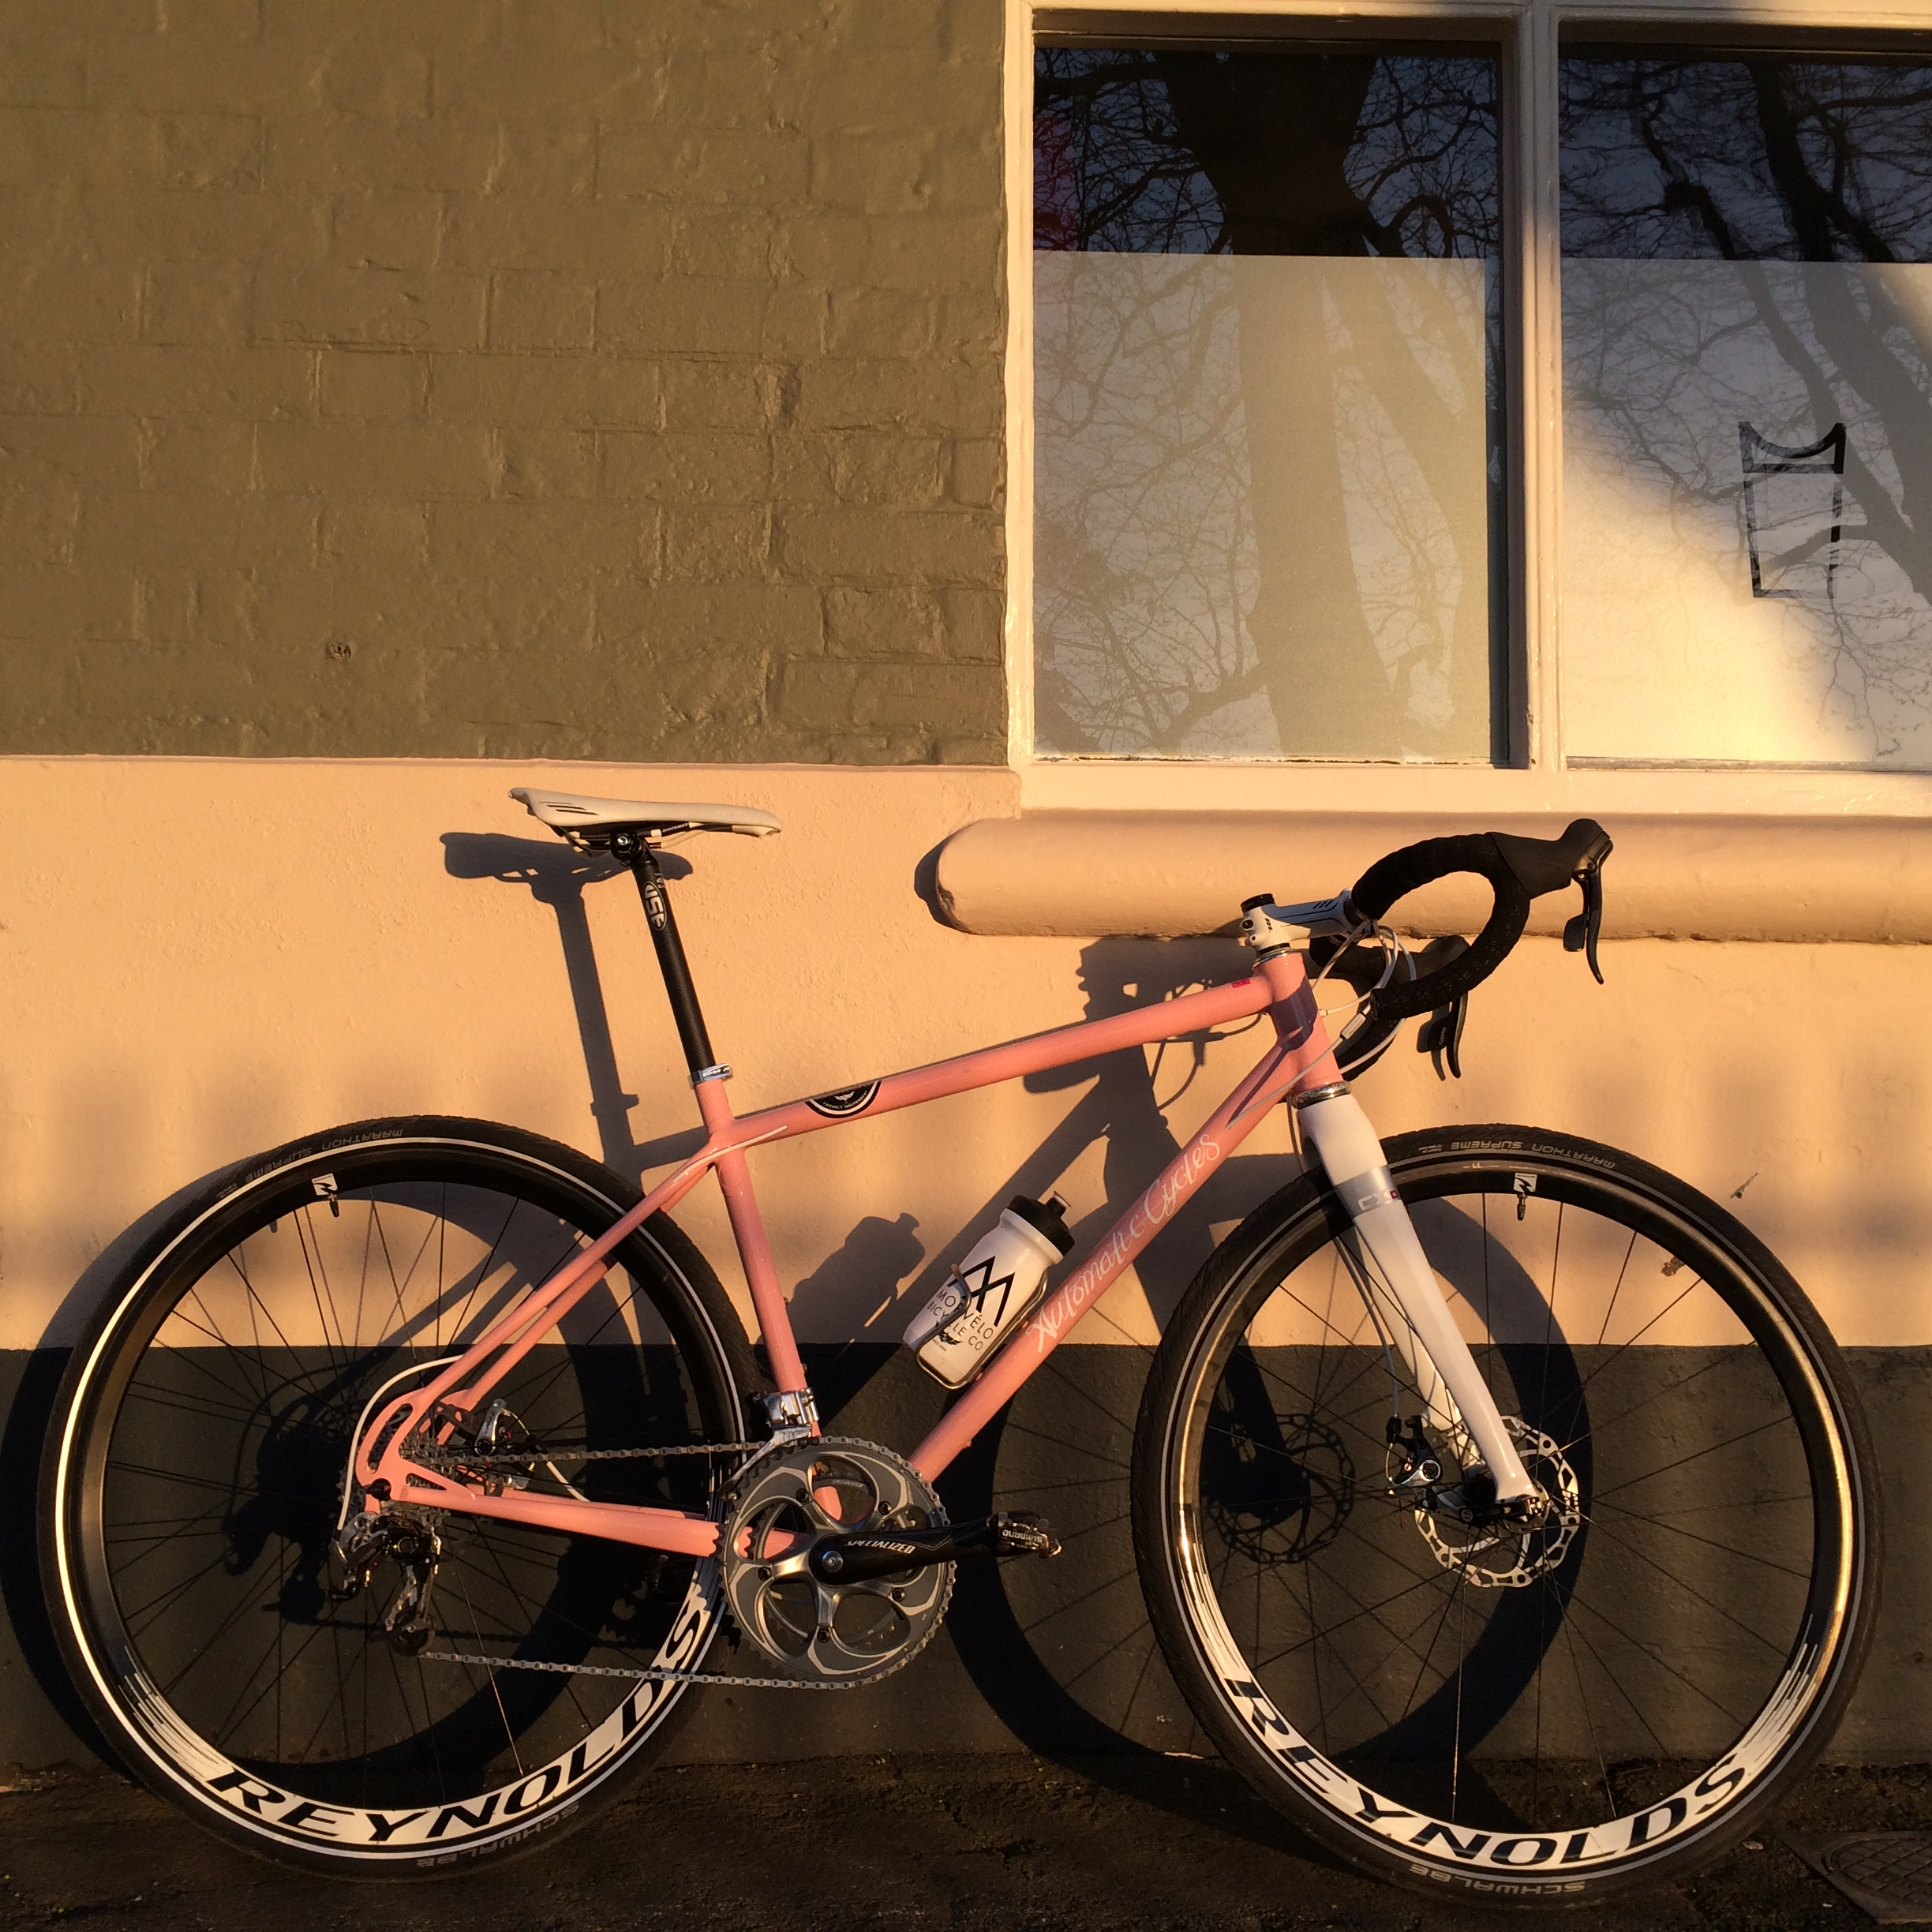 Falcor   a disk road bike that takes big tyres. Call it a gravel bike if you want, but it's more than that.